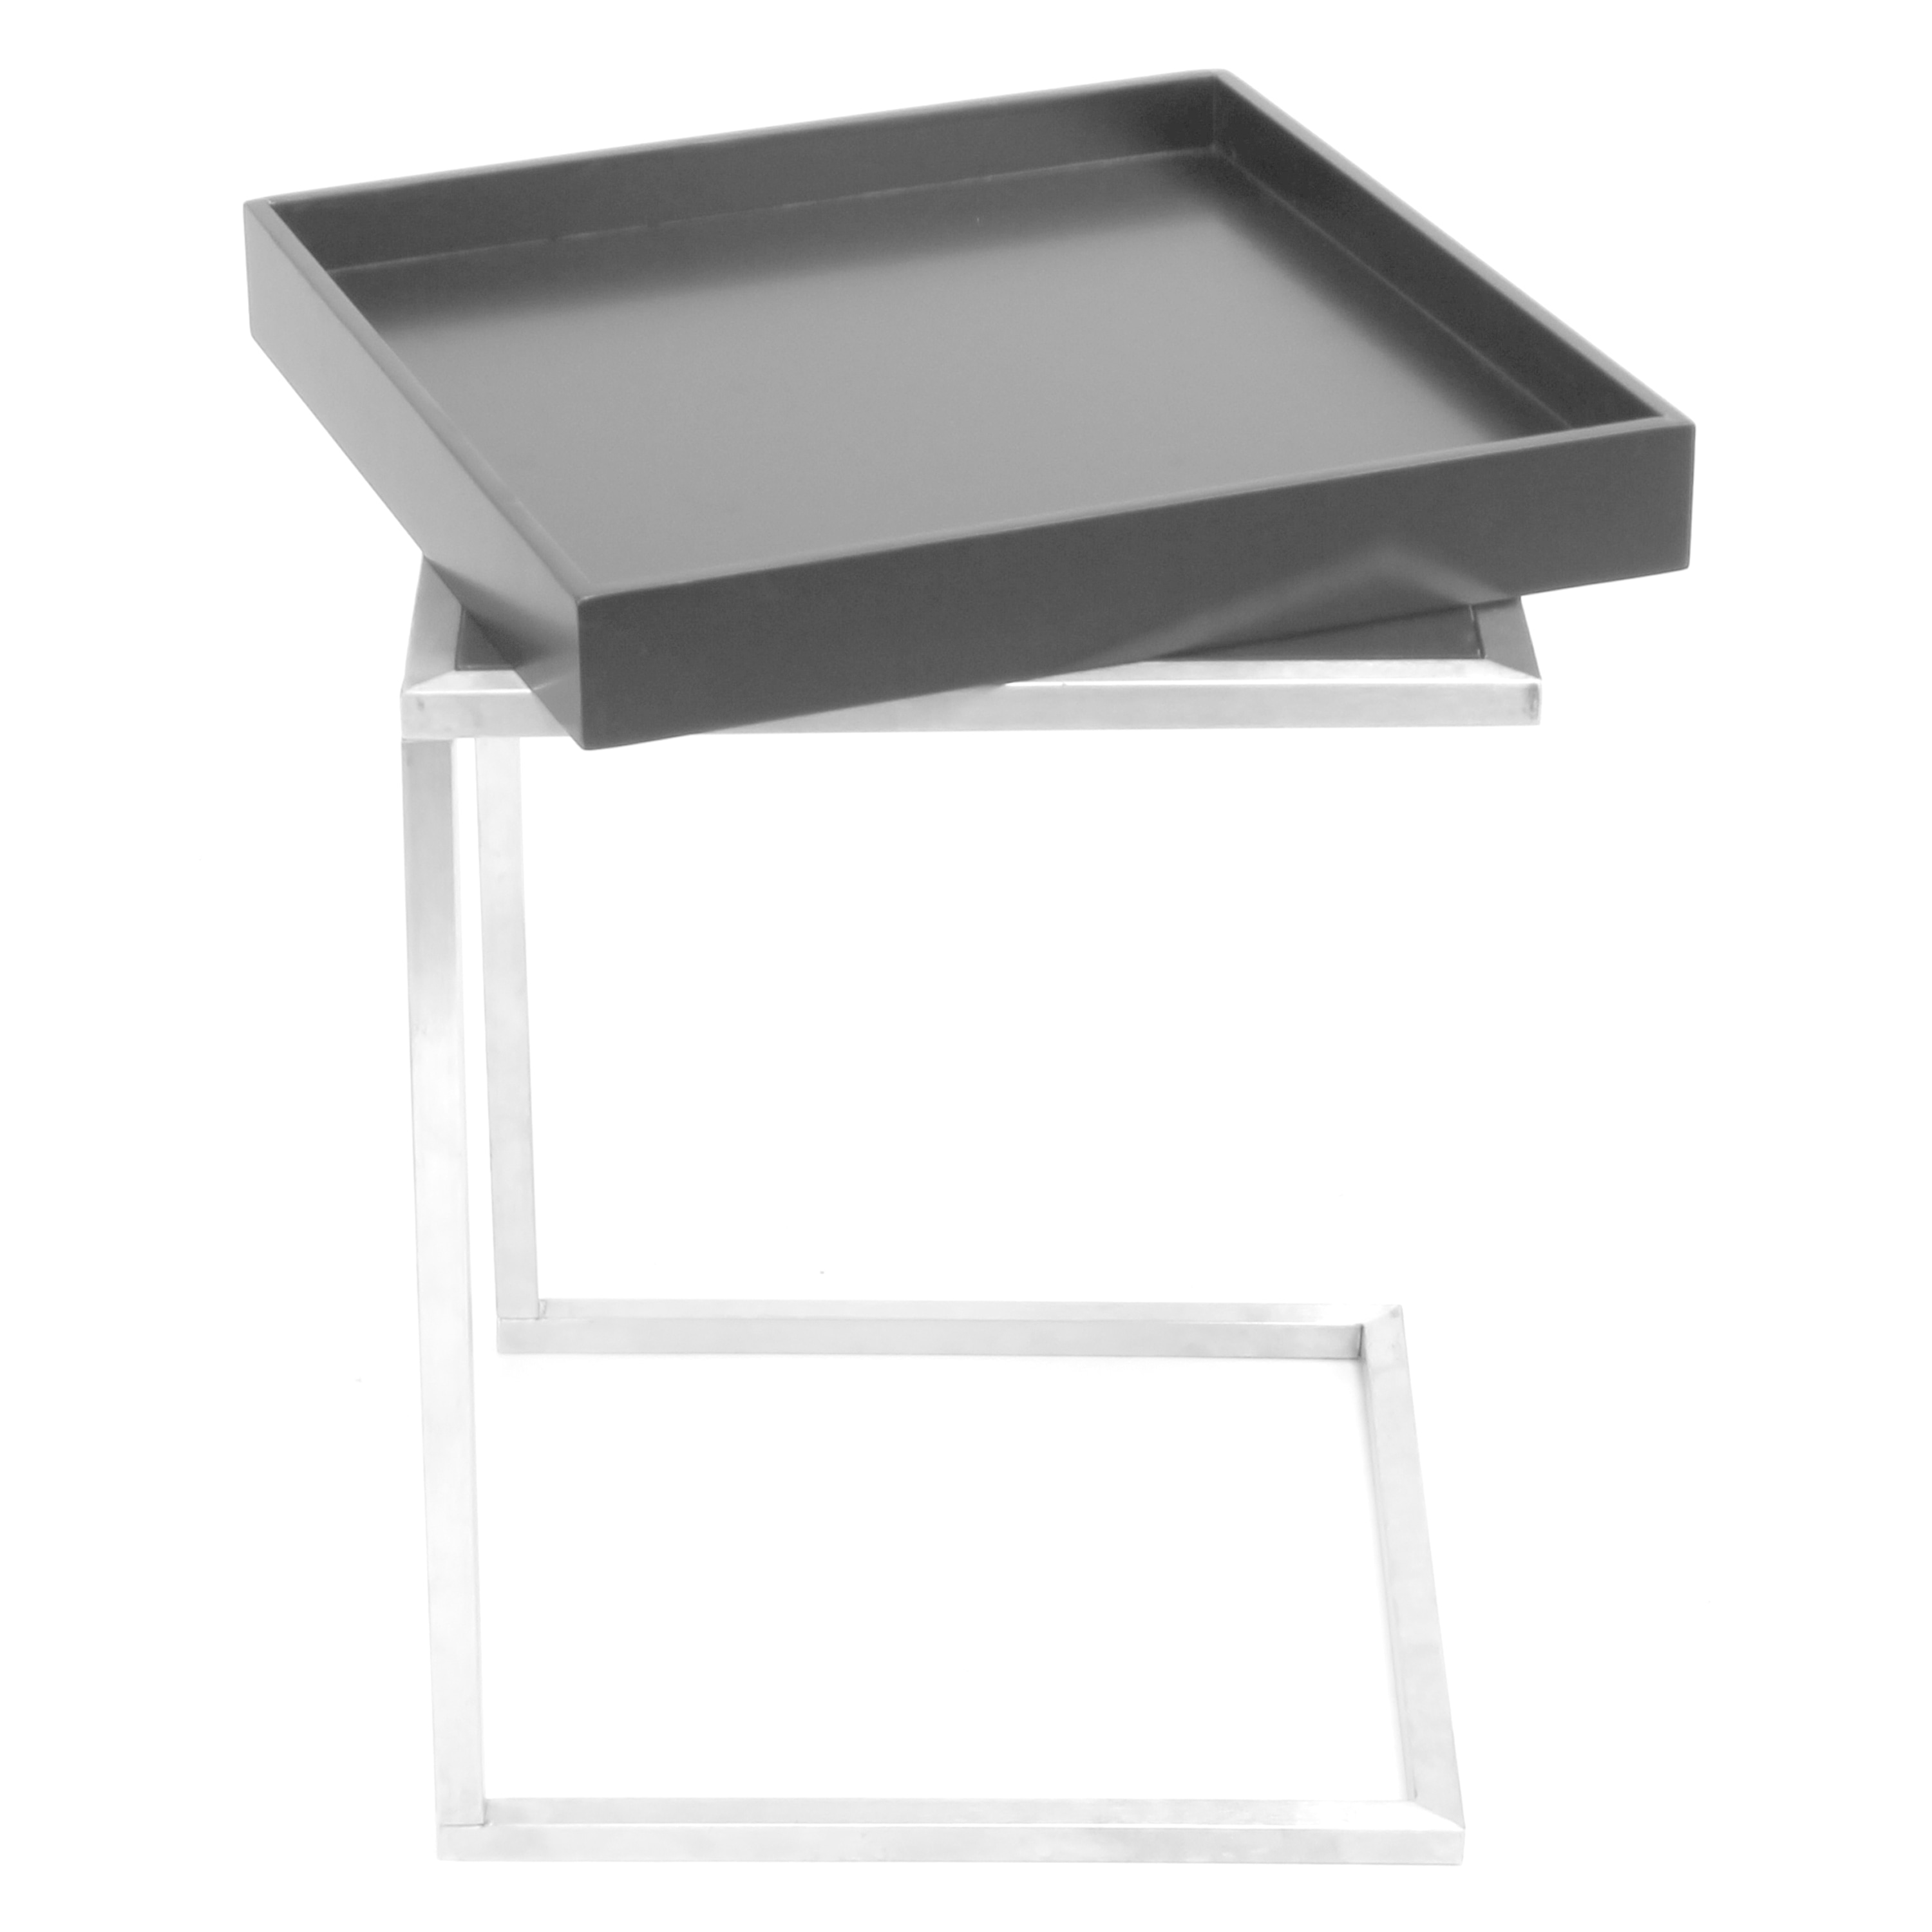 Zenn Contemporary Black And Stainless Steel Tray Table On Free Shipping Today 11552175